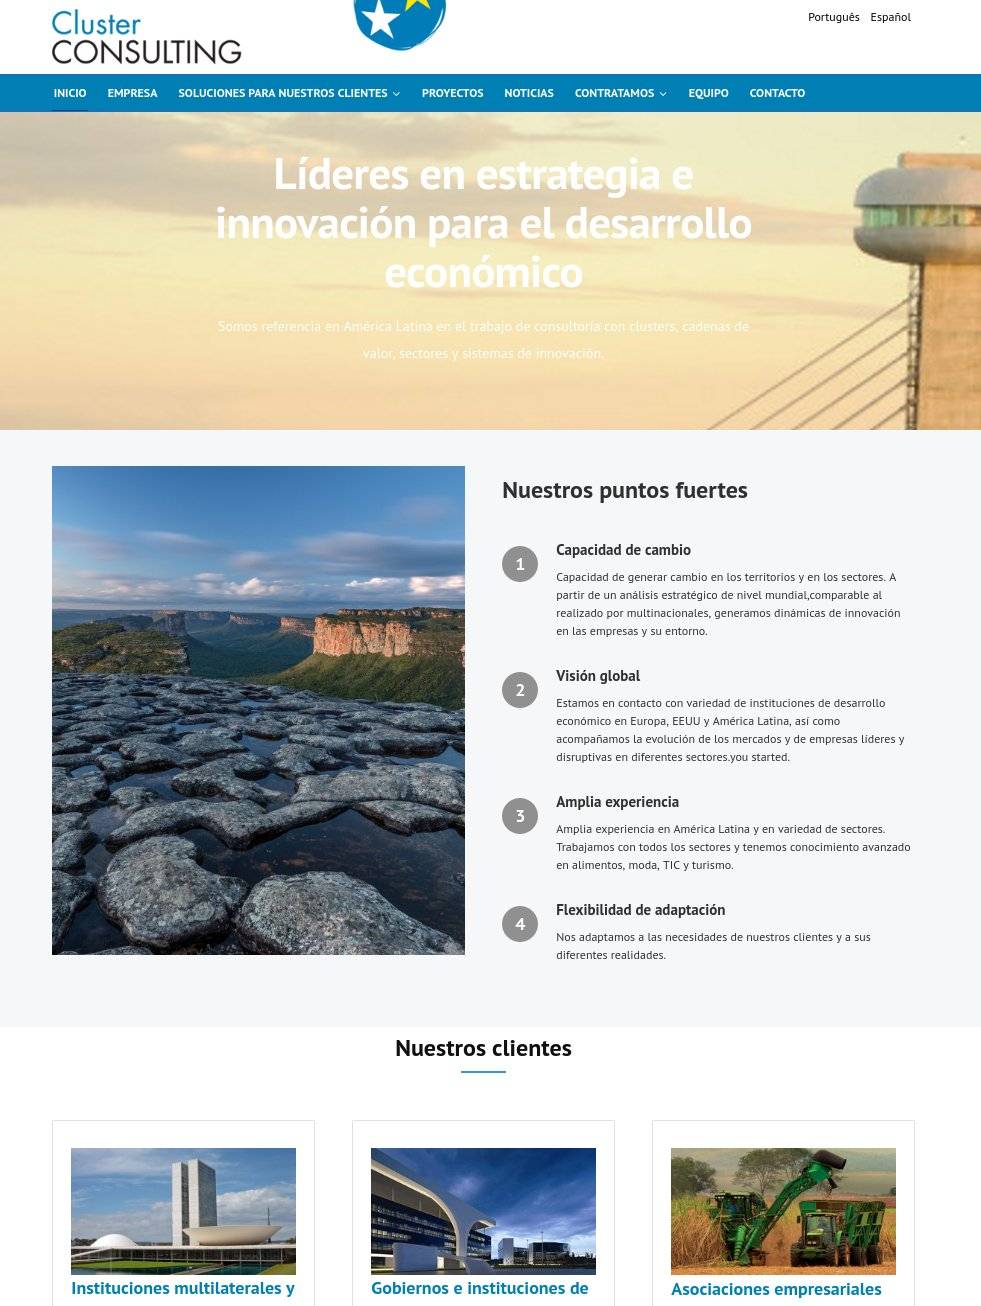 cluster consulting web joomla